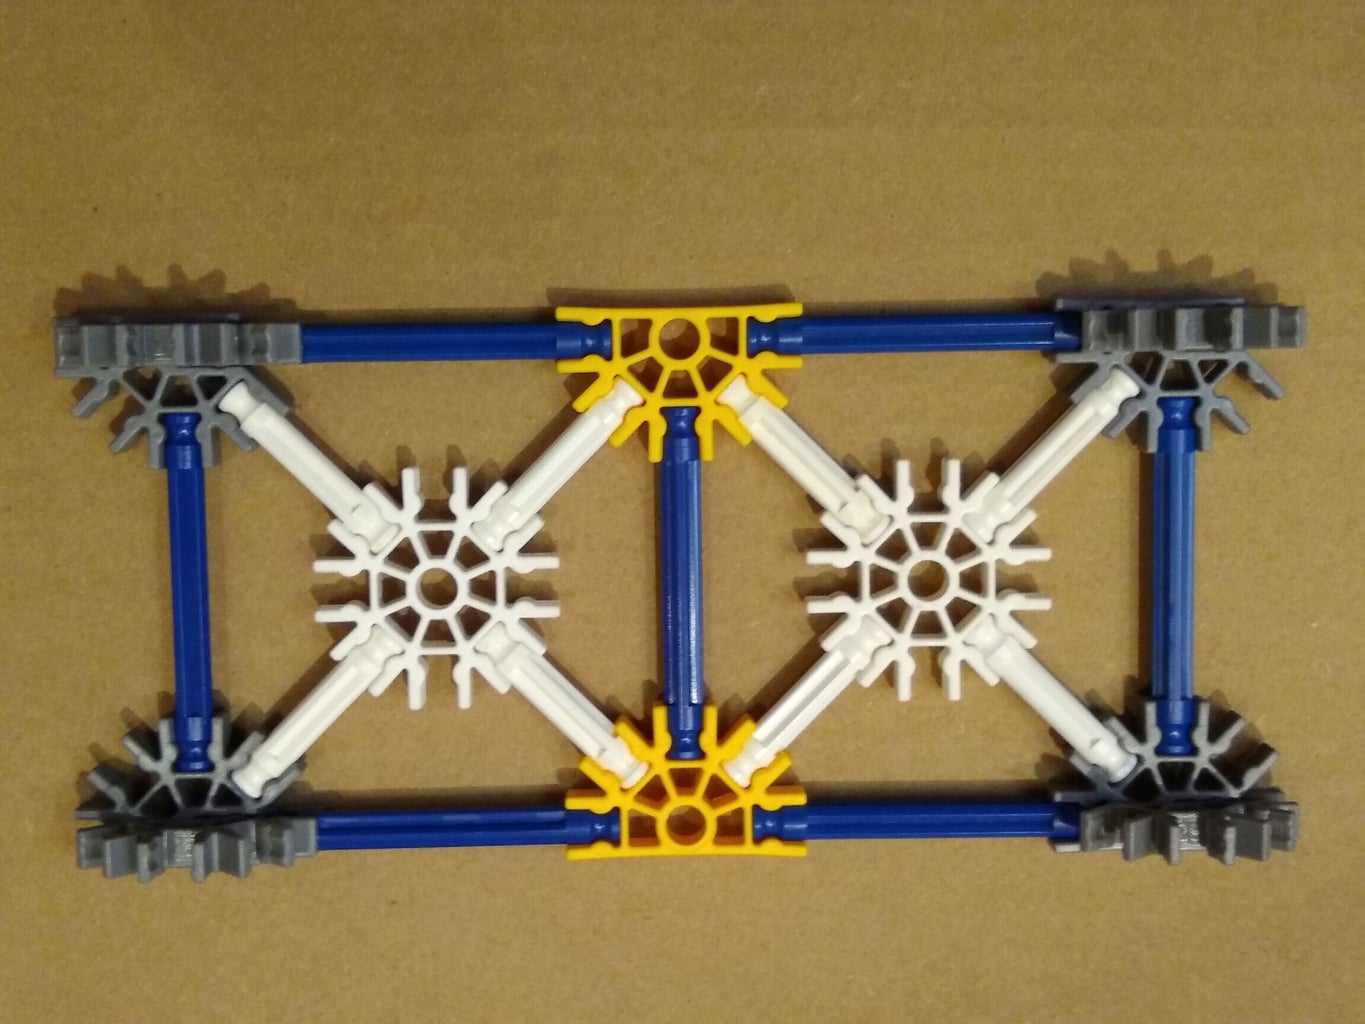 Build the Top of the Frame